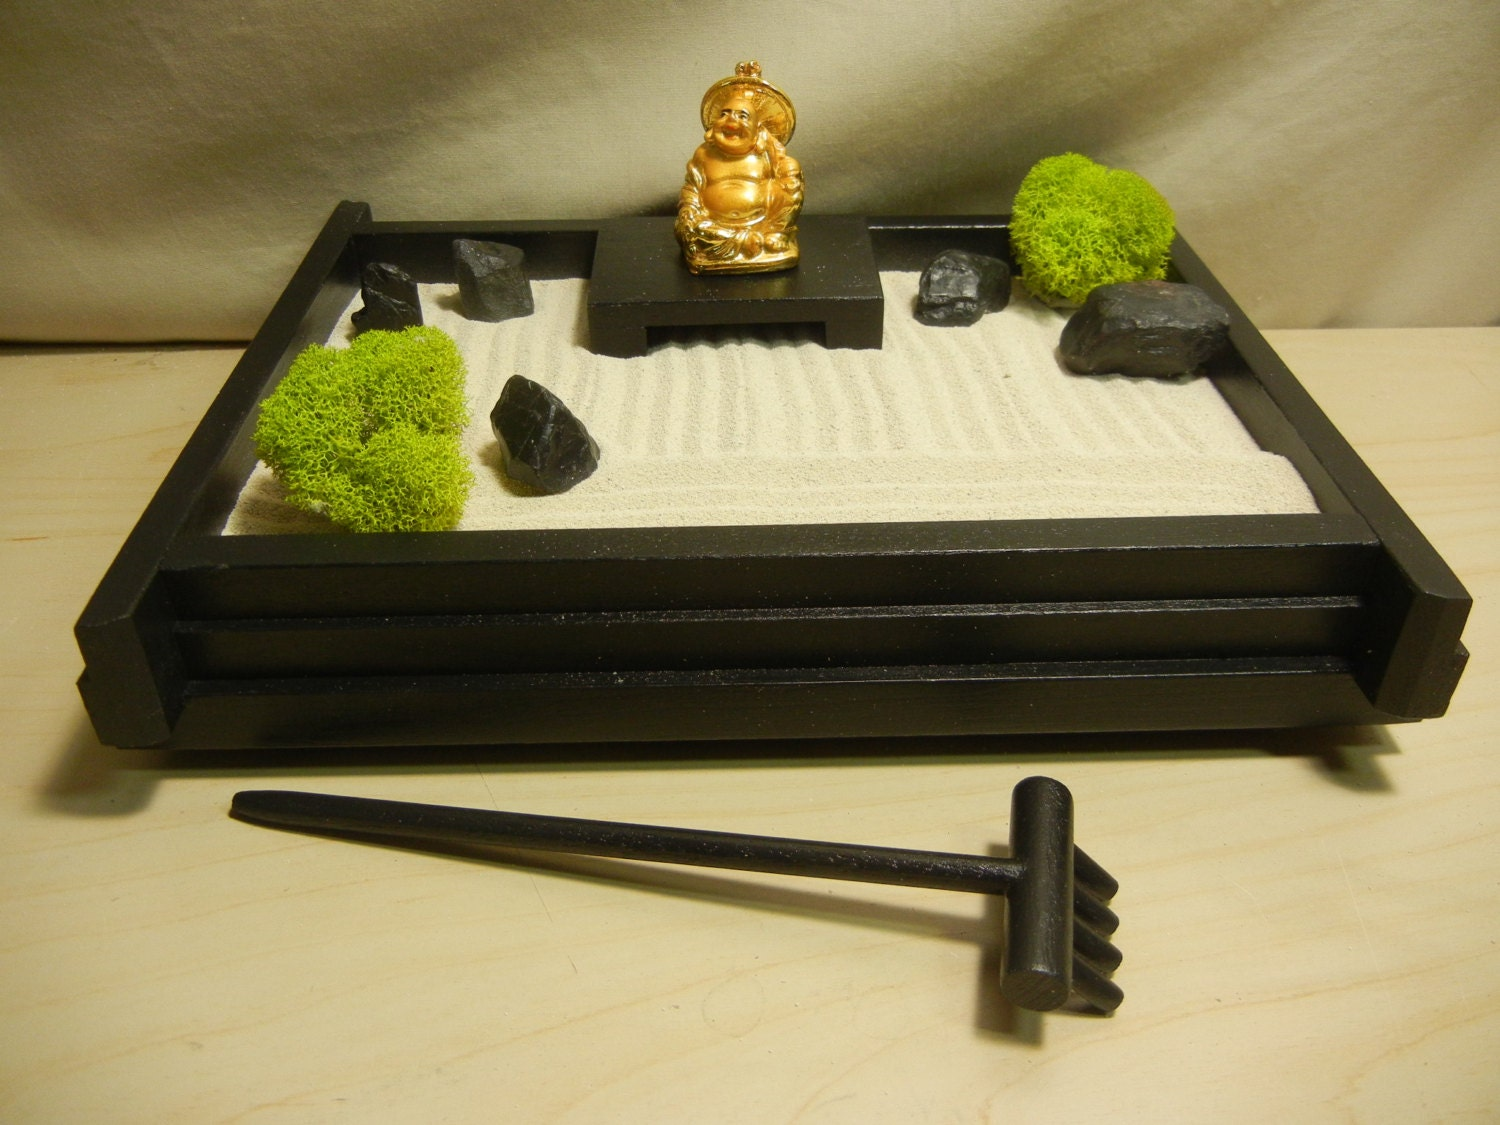 S 03gb small desk or table top zen garden with golden buddha for Table zen garden